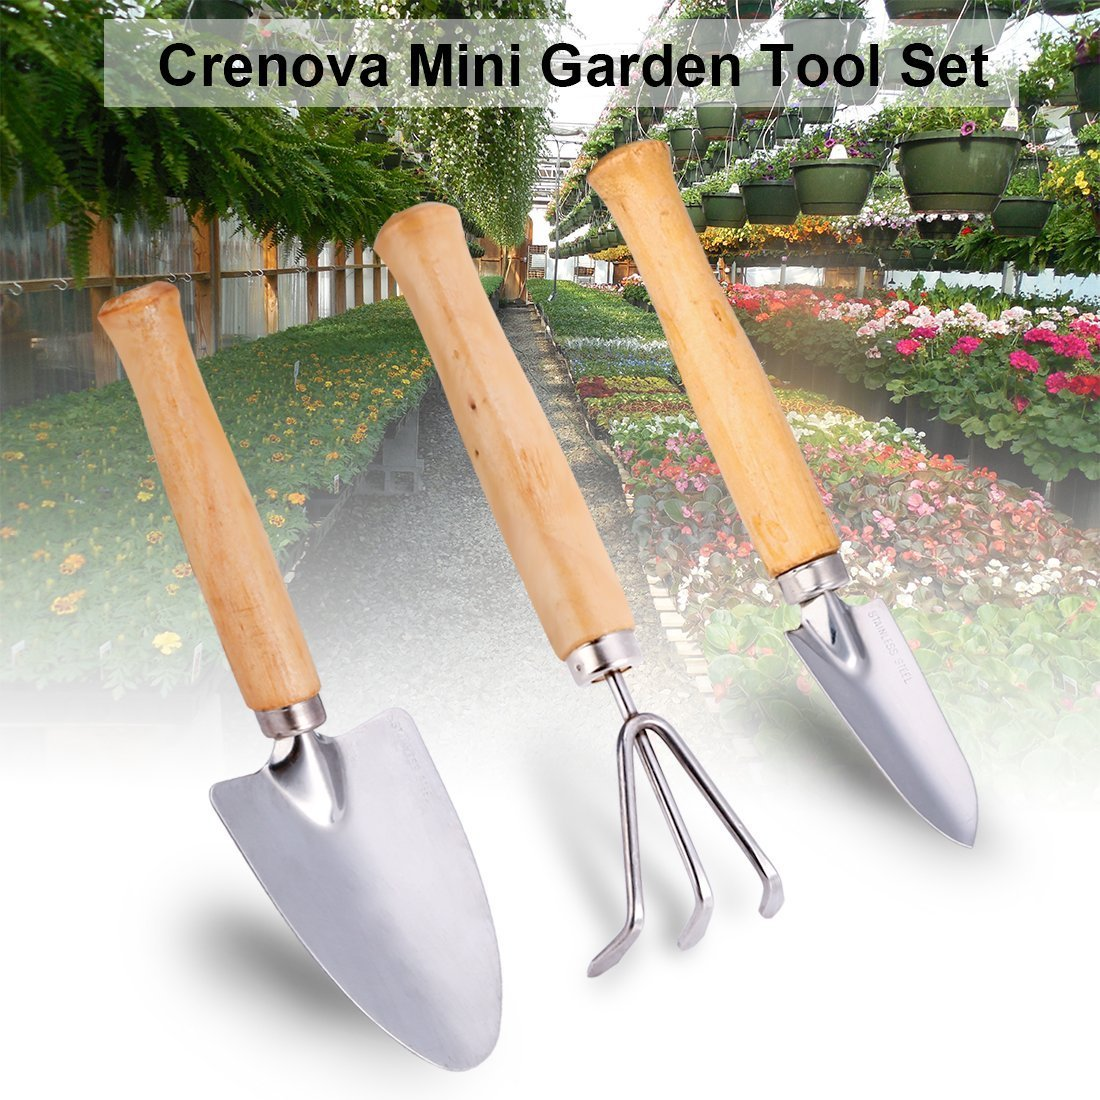 CRENOVA Mini Garden Tool Set, 3 Piece Stainless Steel Heavy Duty Gardening Kit with Solid Wood Non-Slip Handle, 2 Trowels + 1 Rake, Garden Gifts for Men & Women by CRENOVA